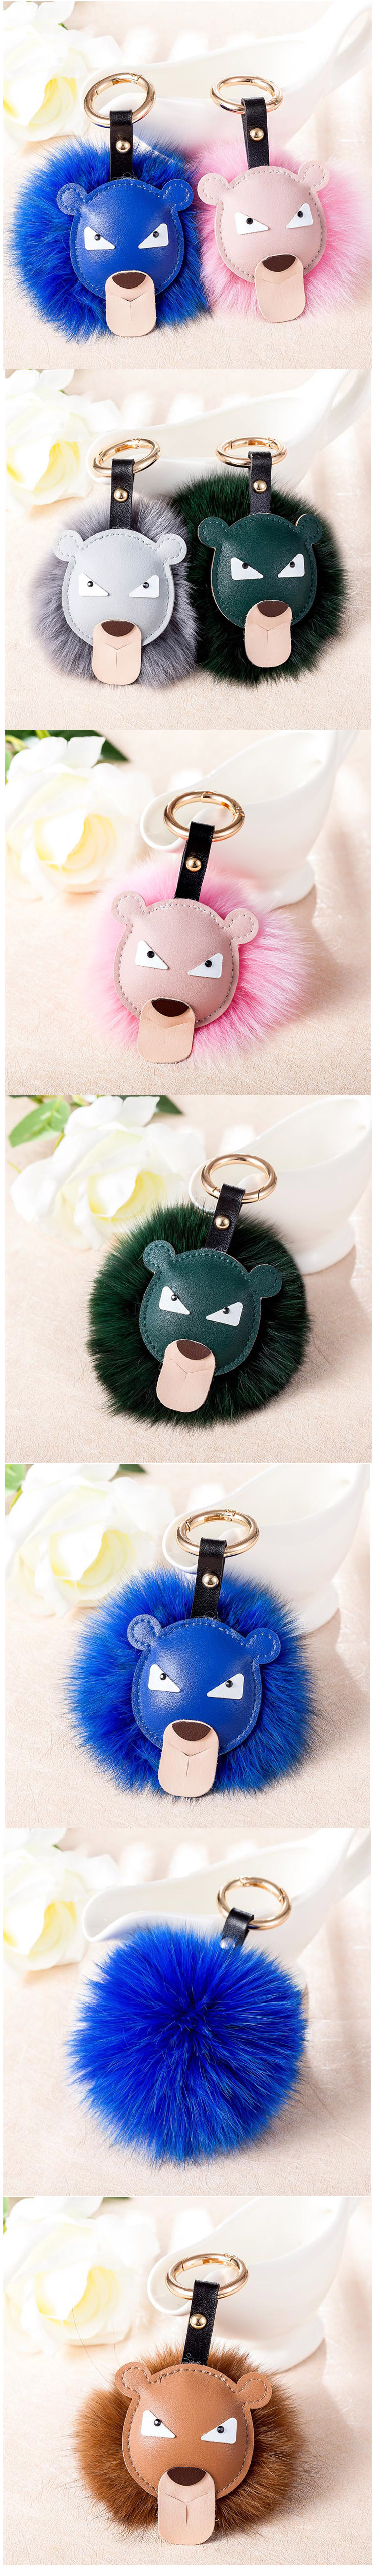 Plush Fox Furfluffy Pom Poms Keyring Keychain With Leather Lion Head